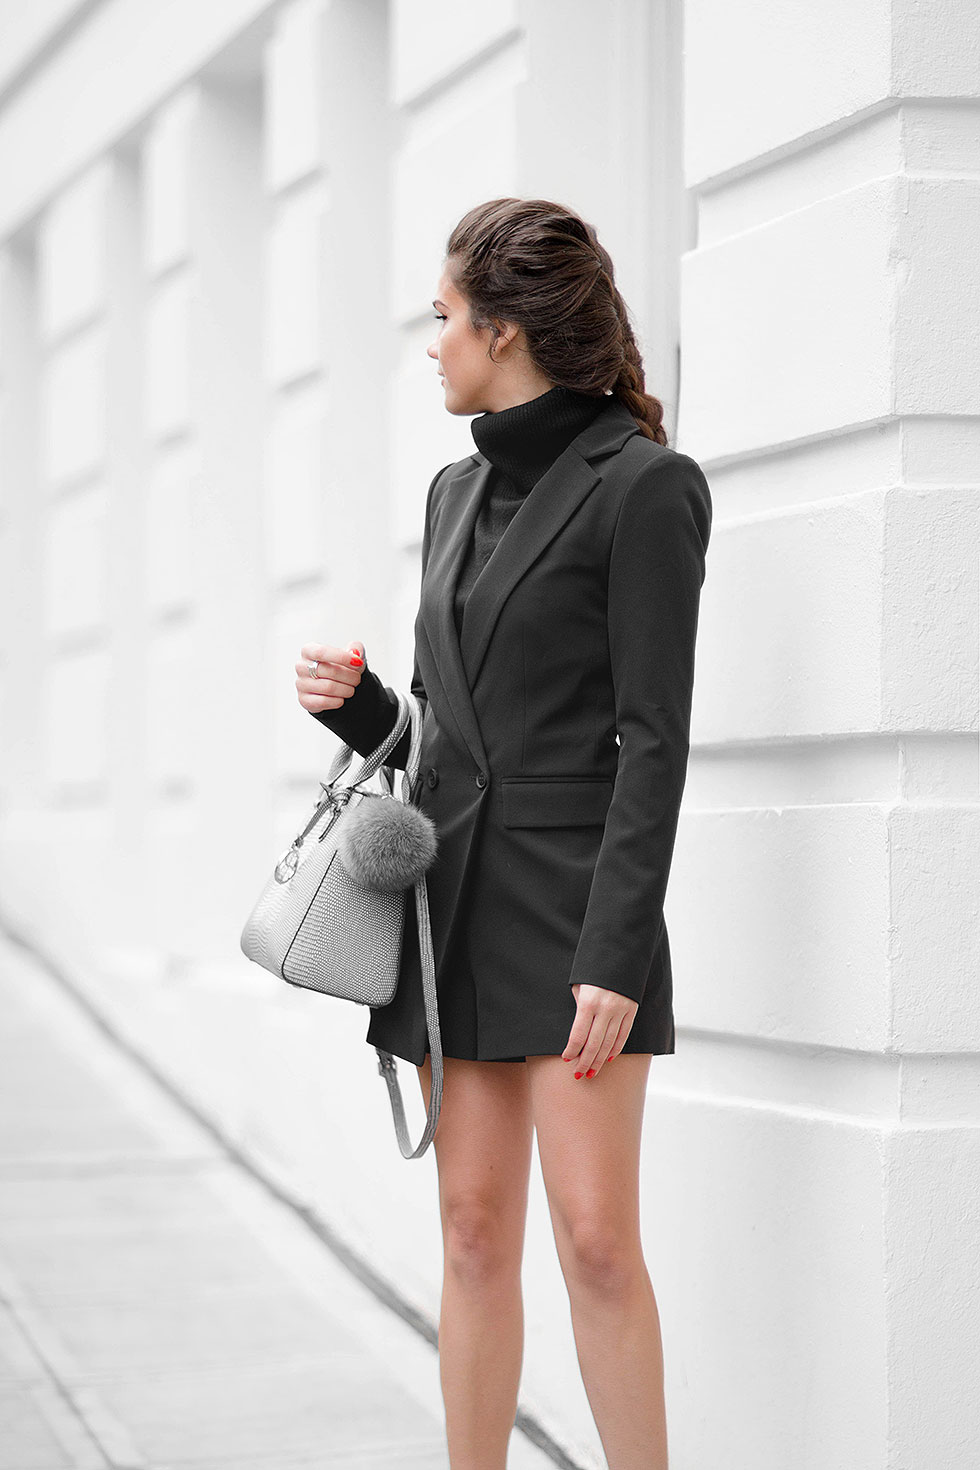 Stay Stylish in a Long Sleeve Blazer Romper this Winter --- Long Sleeve Blazer Romper Dress, Henri Bendel West 57th Small Lizard Turnlock Satchel